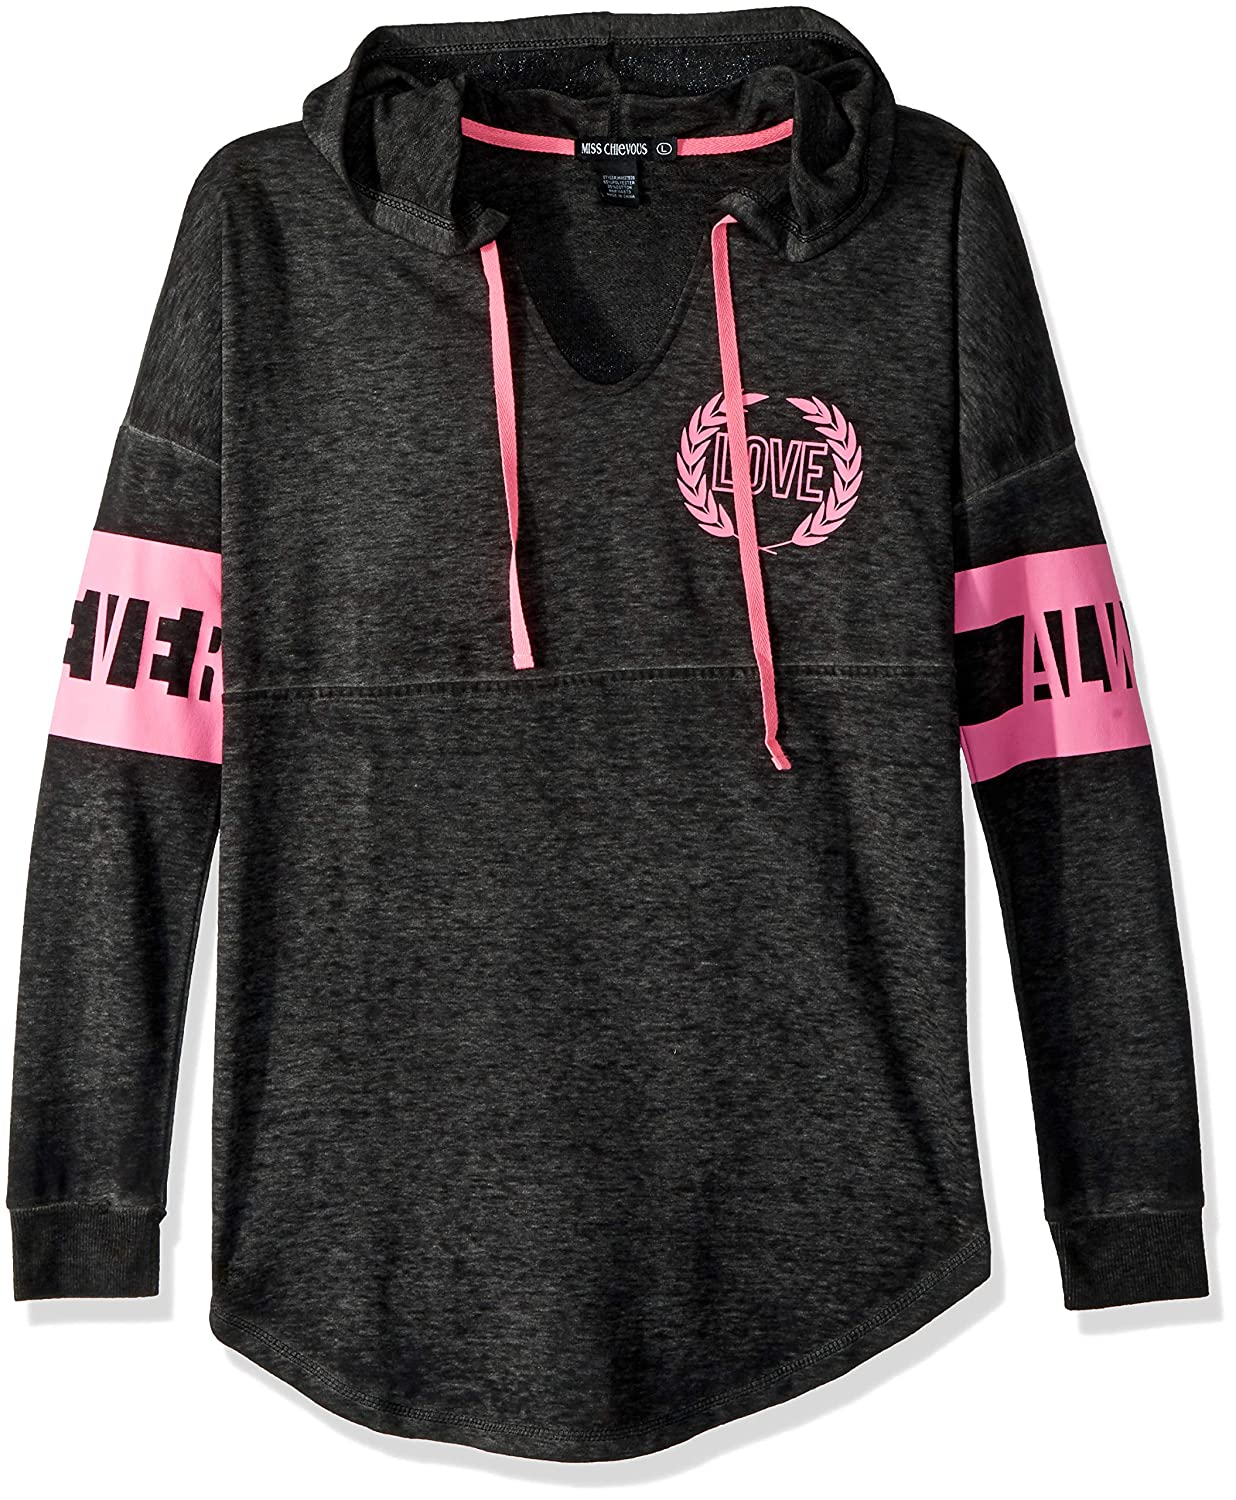 Miss Chievous Women's Long Sleeve Burnwash Notch Neck Hoodie with Pink Twill Pulls SS Black JA9827B38